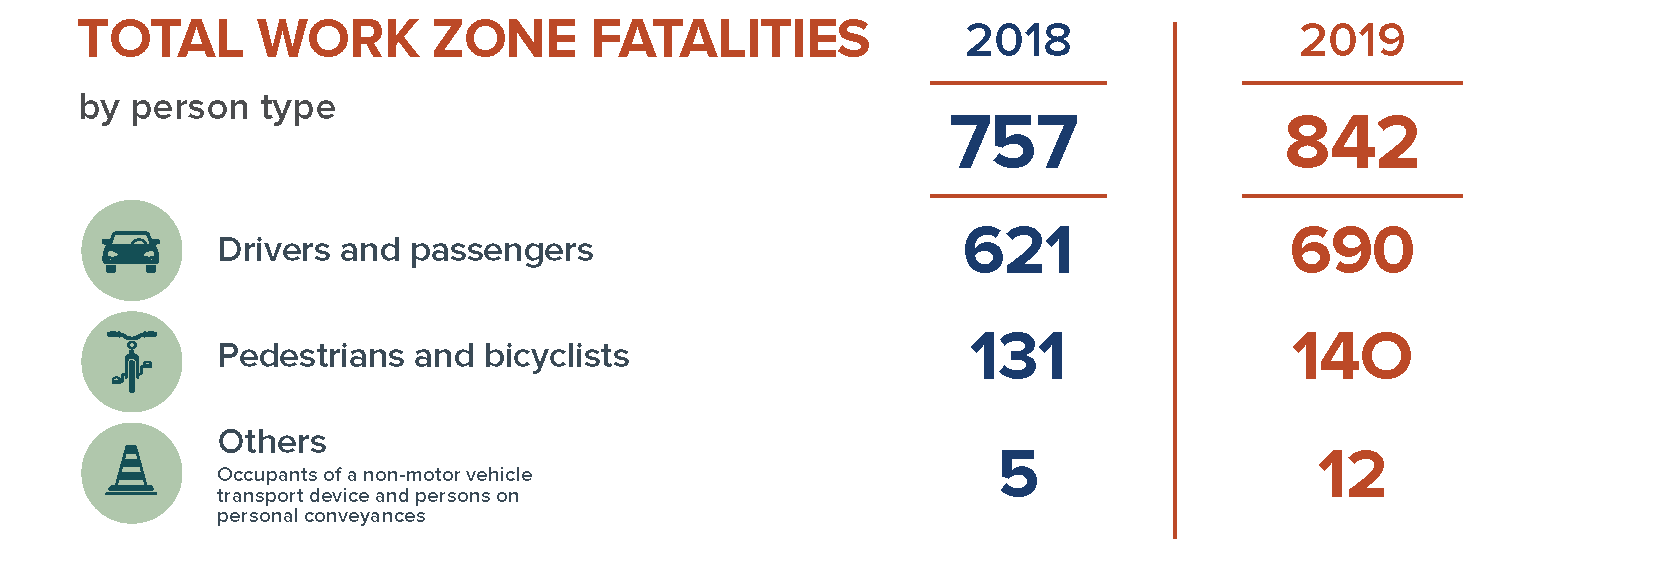 Total work zone fatalities by person type in 2018 are 757 and in 2019 are 842.